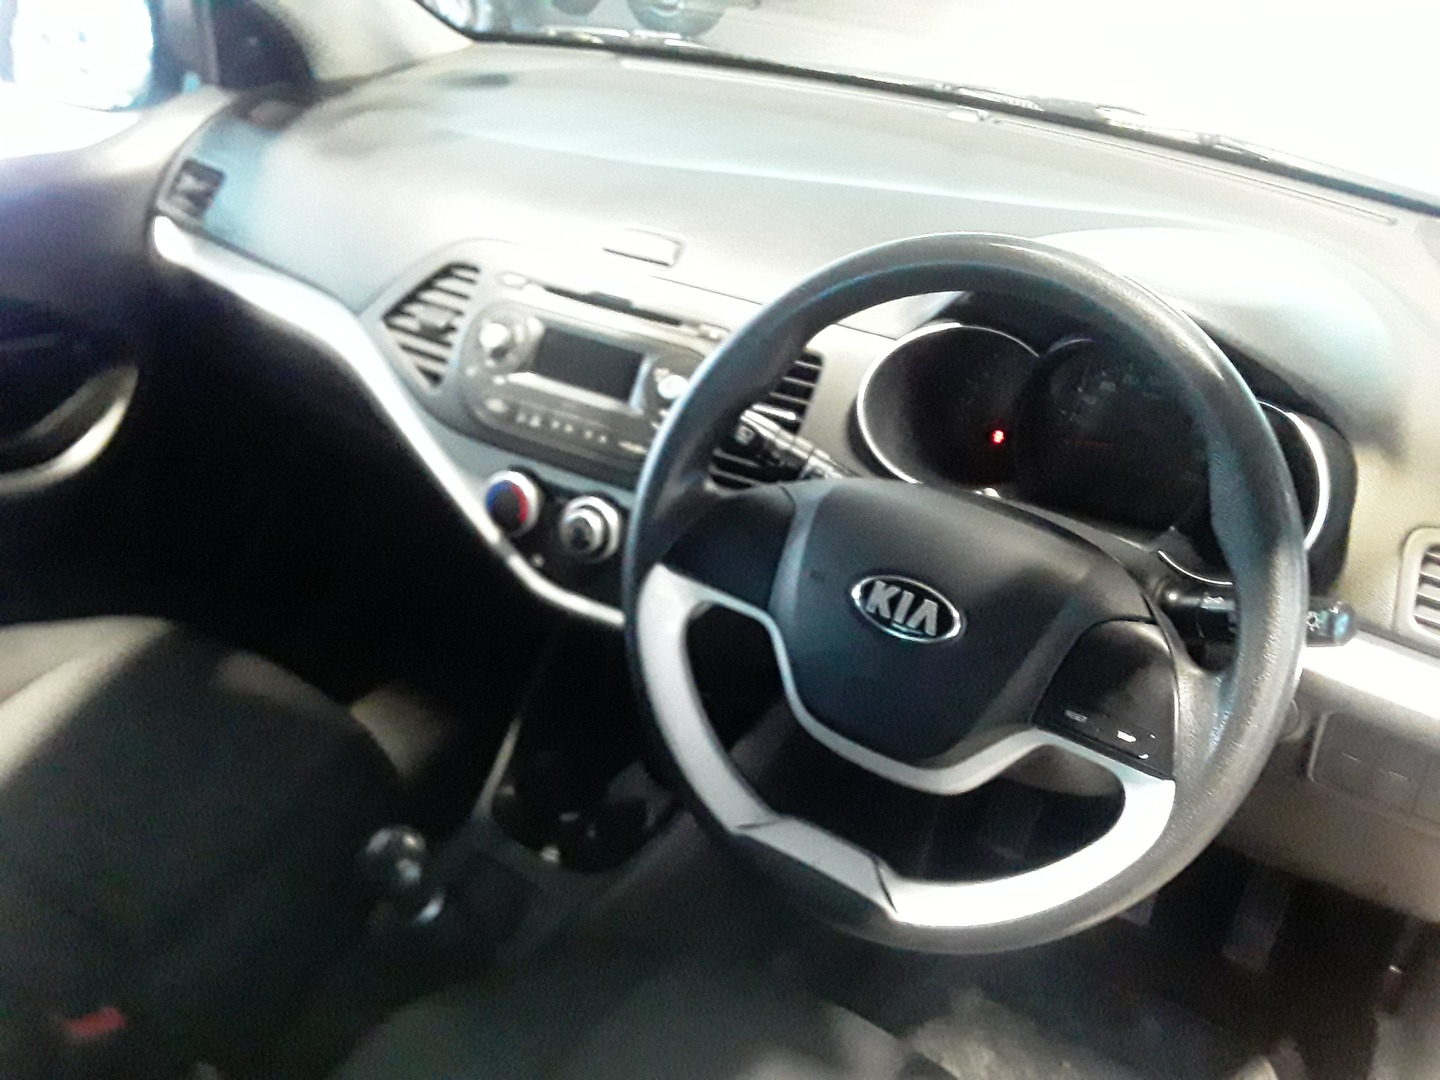 KIA 1.0 LX Bedfordview 7332501